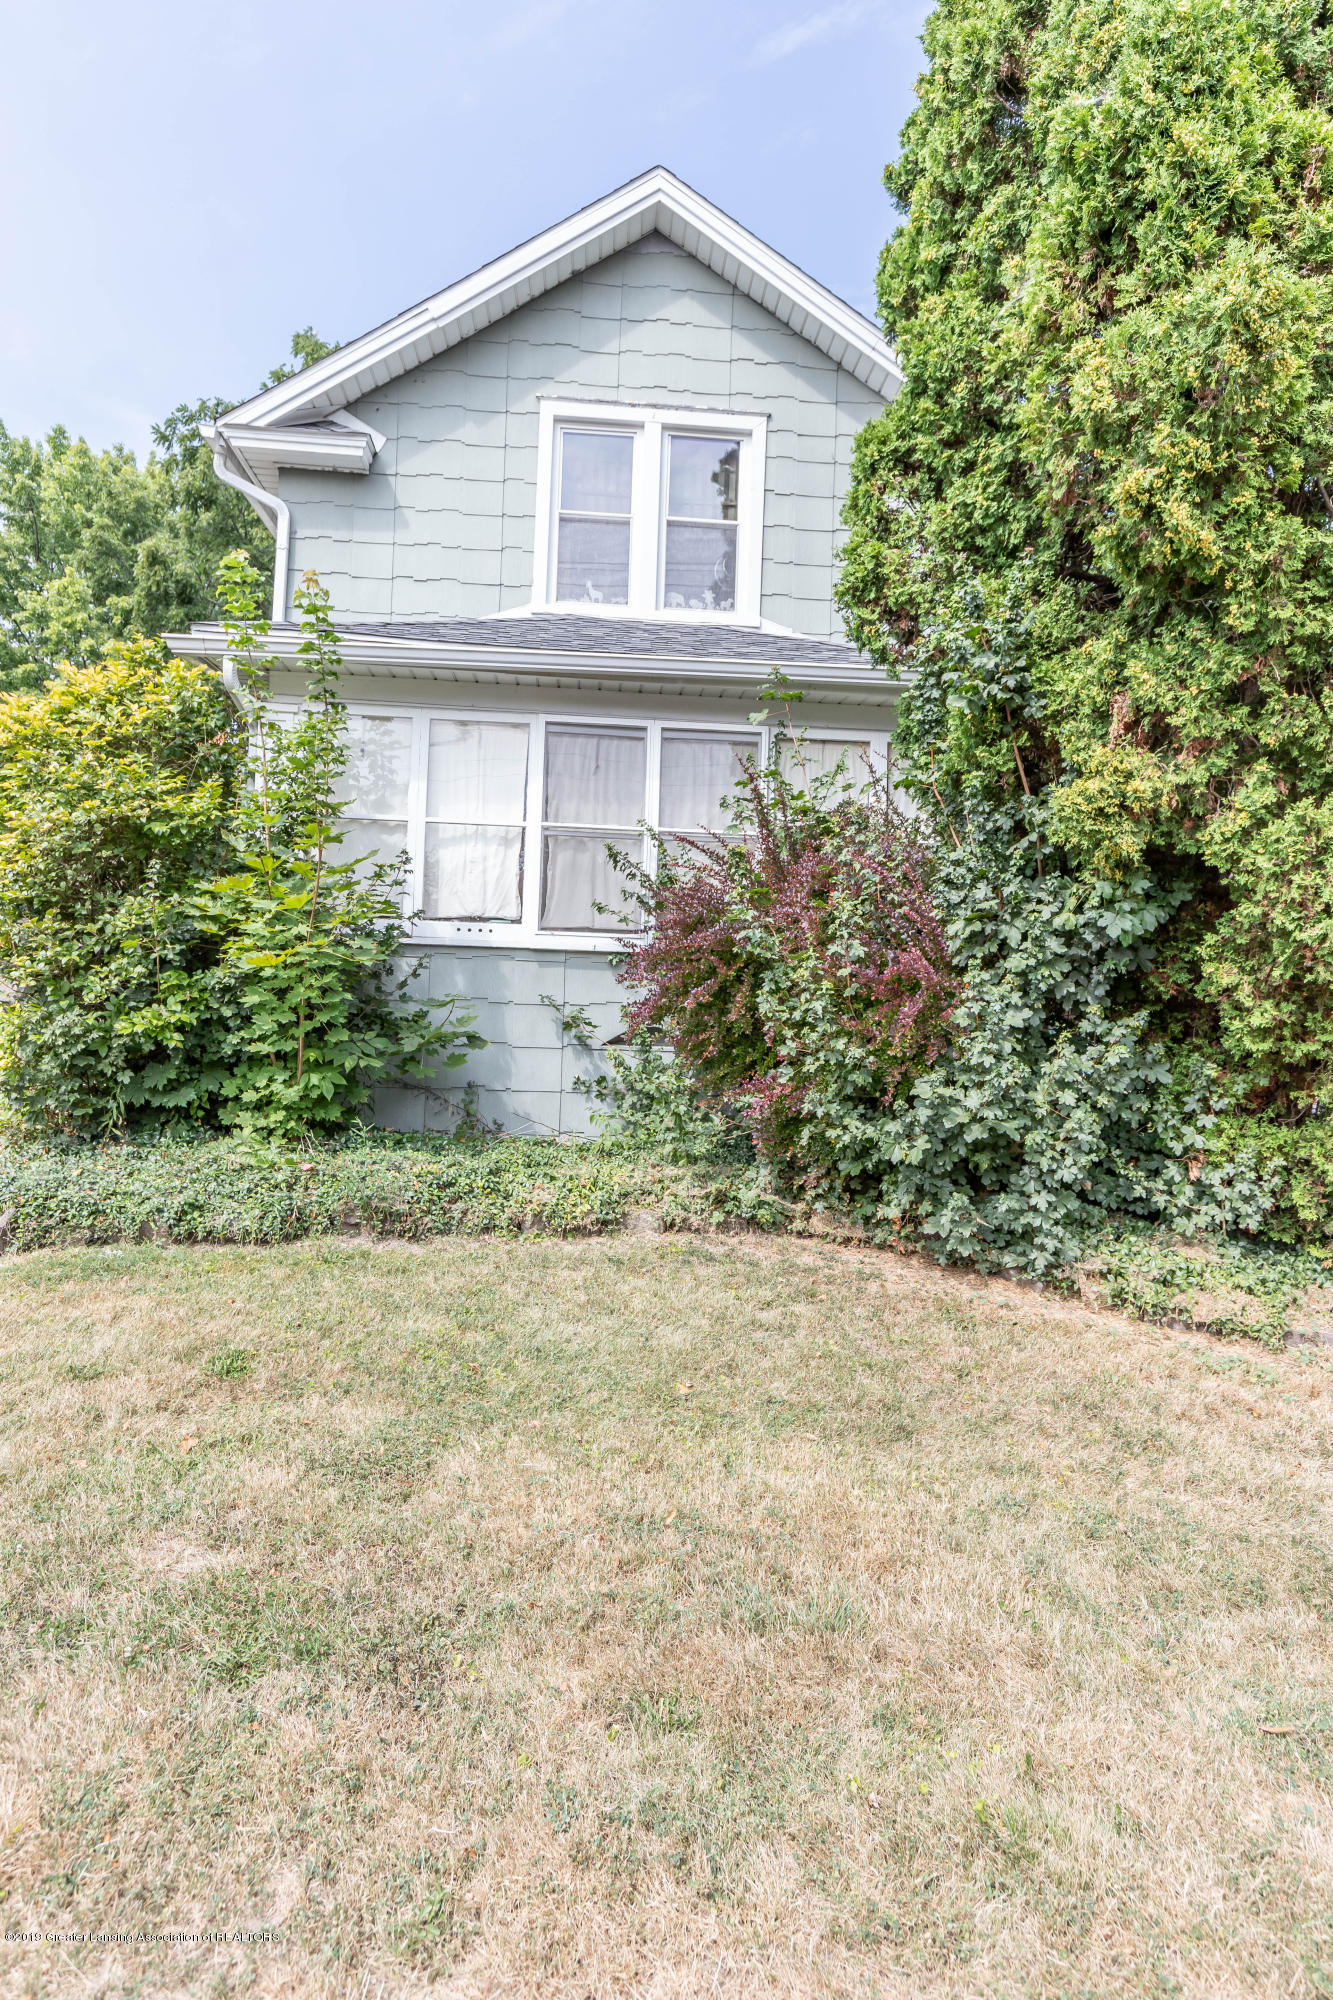 233 N Magnolia Ave - nmagfront (1 of 1) - 27